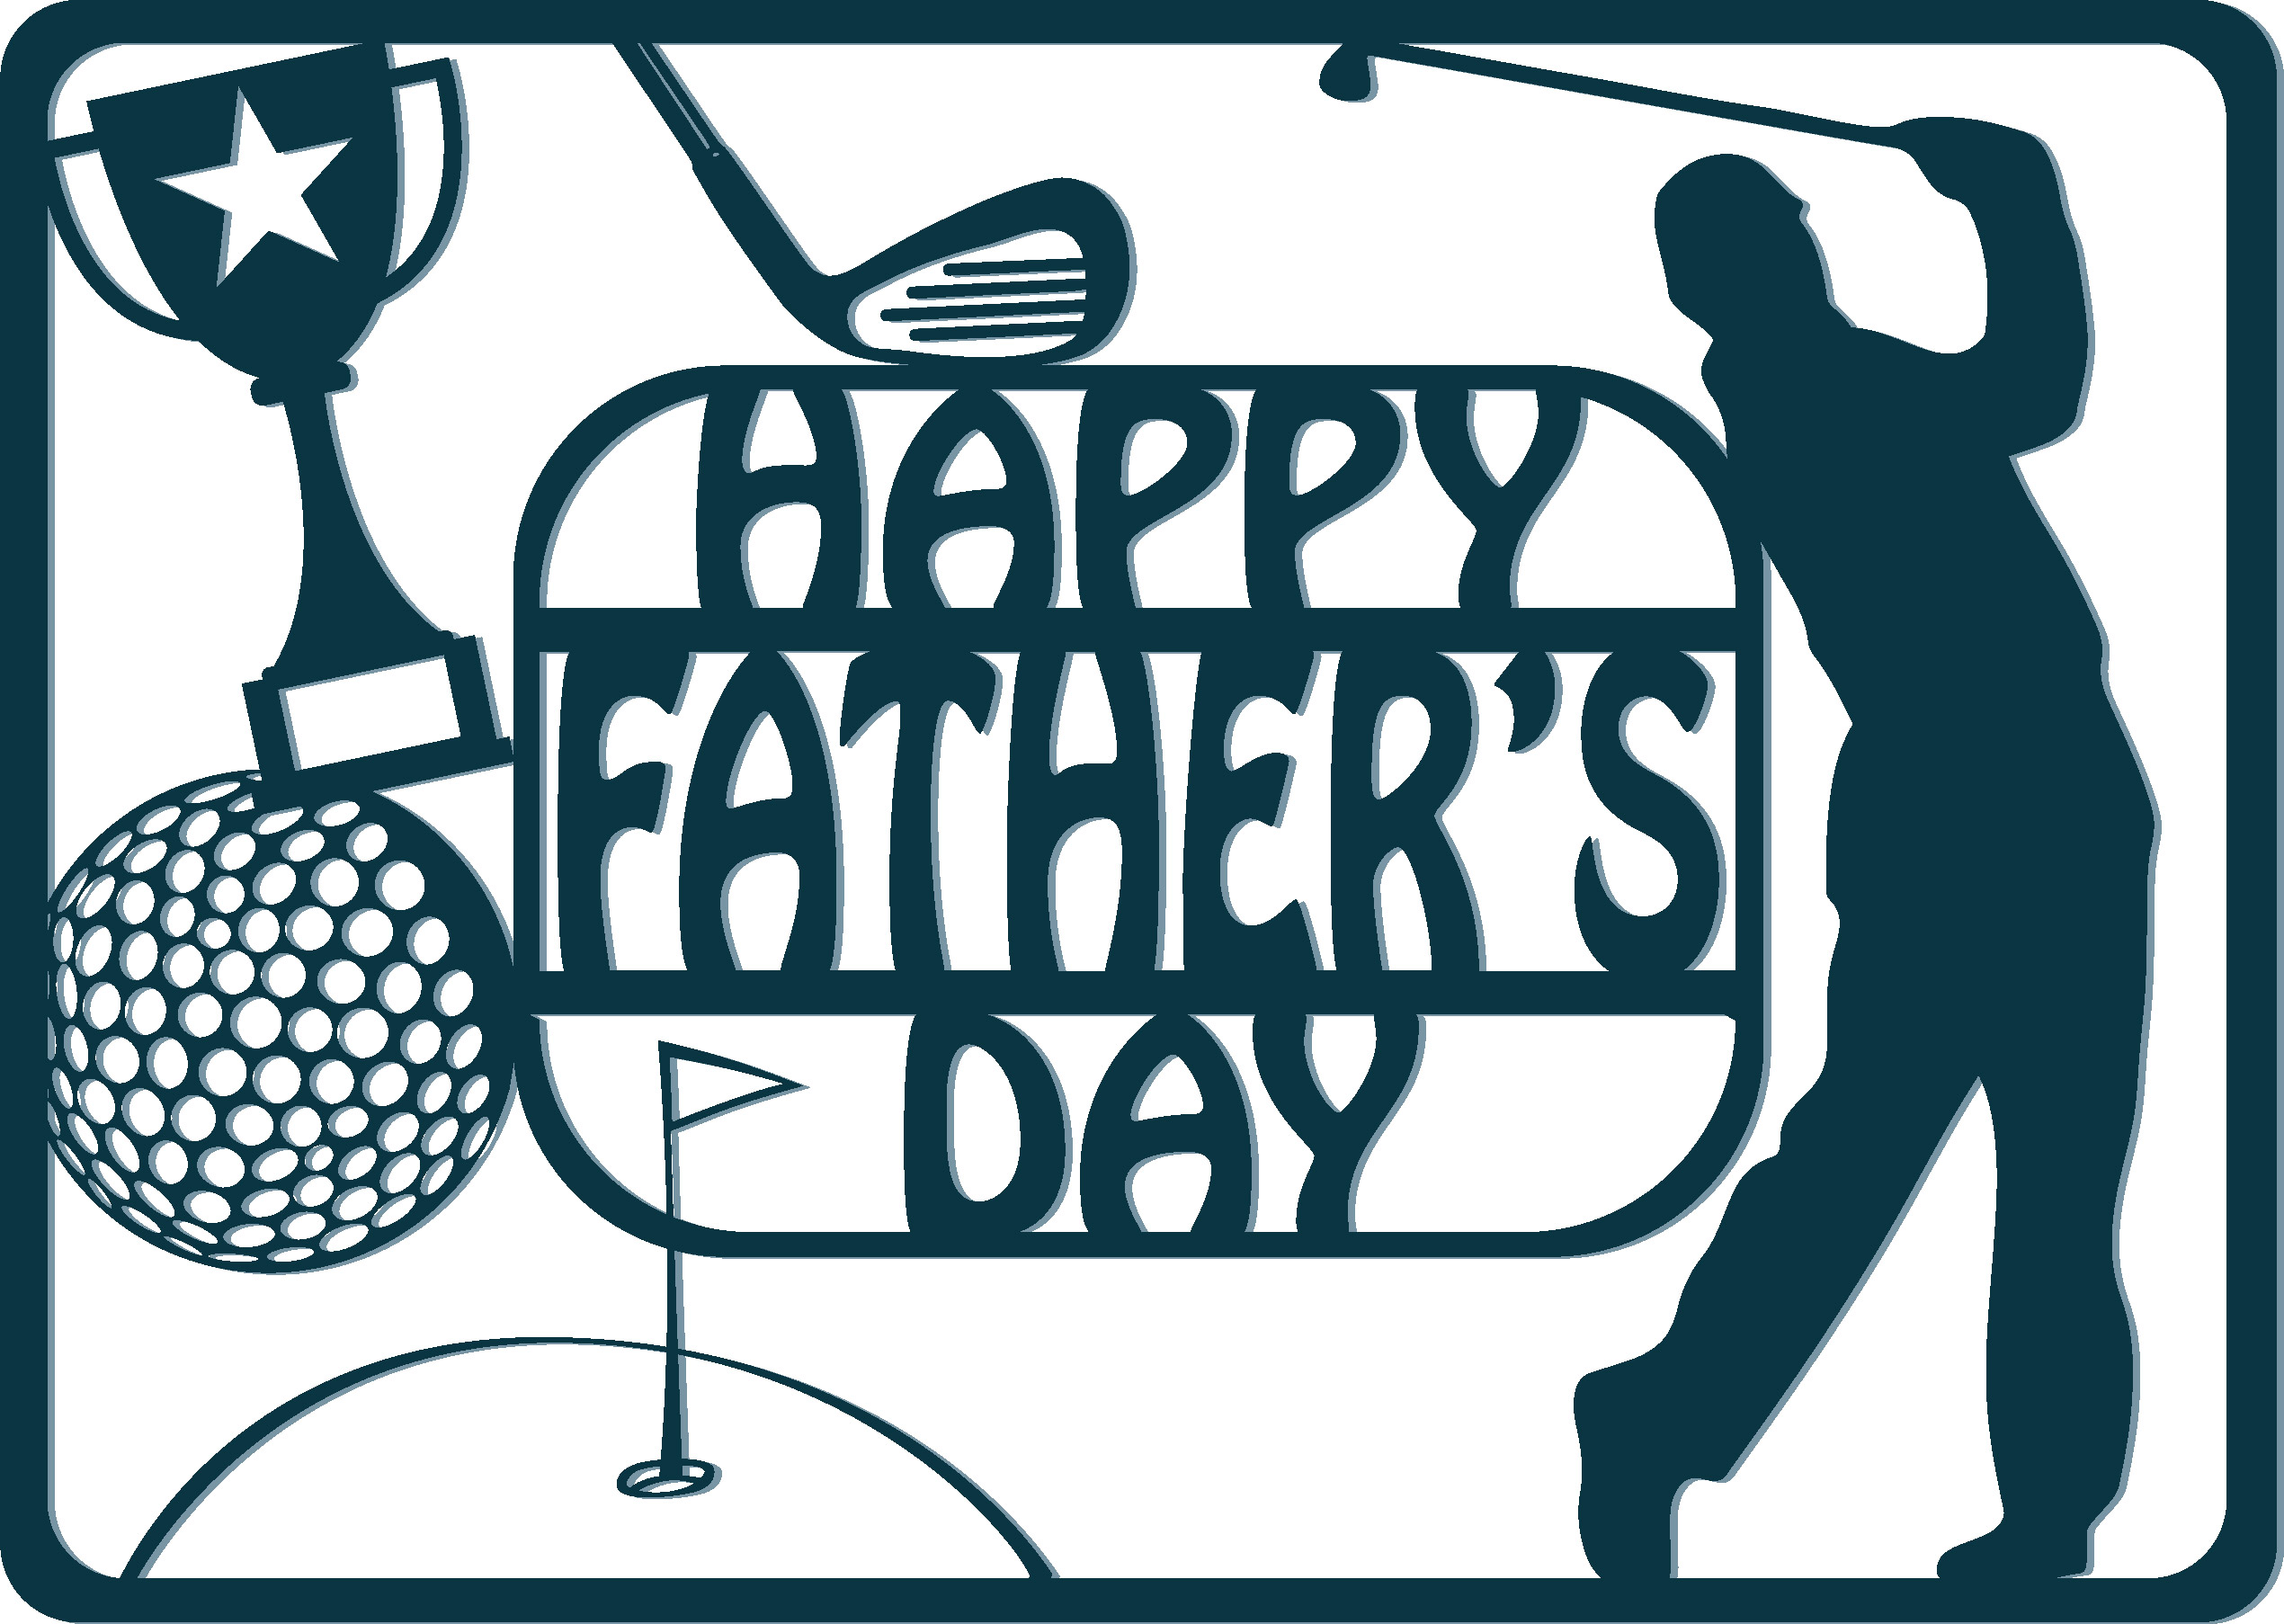 Free If you have questions about licensing then please feel free to reach out. Free Father S Day Svg Cutting Overlays For Making Your Own Cards Kabram Krafts SVG, PNG, EPS, DXF File